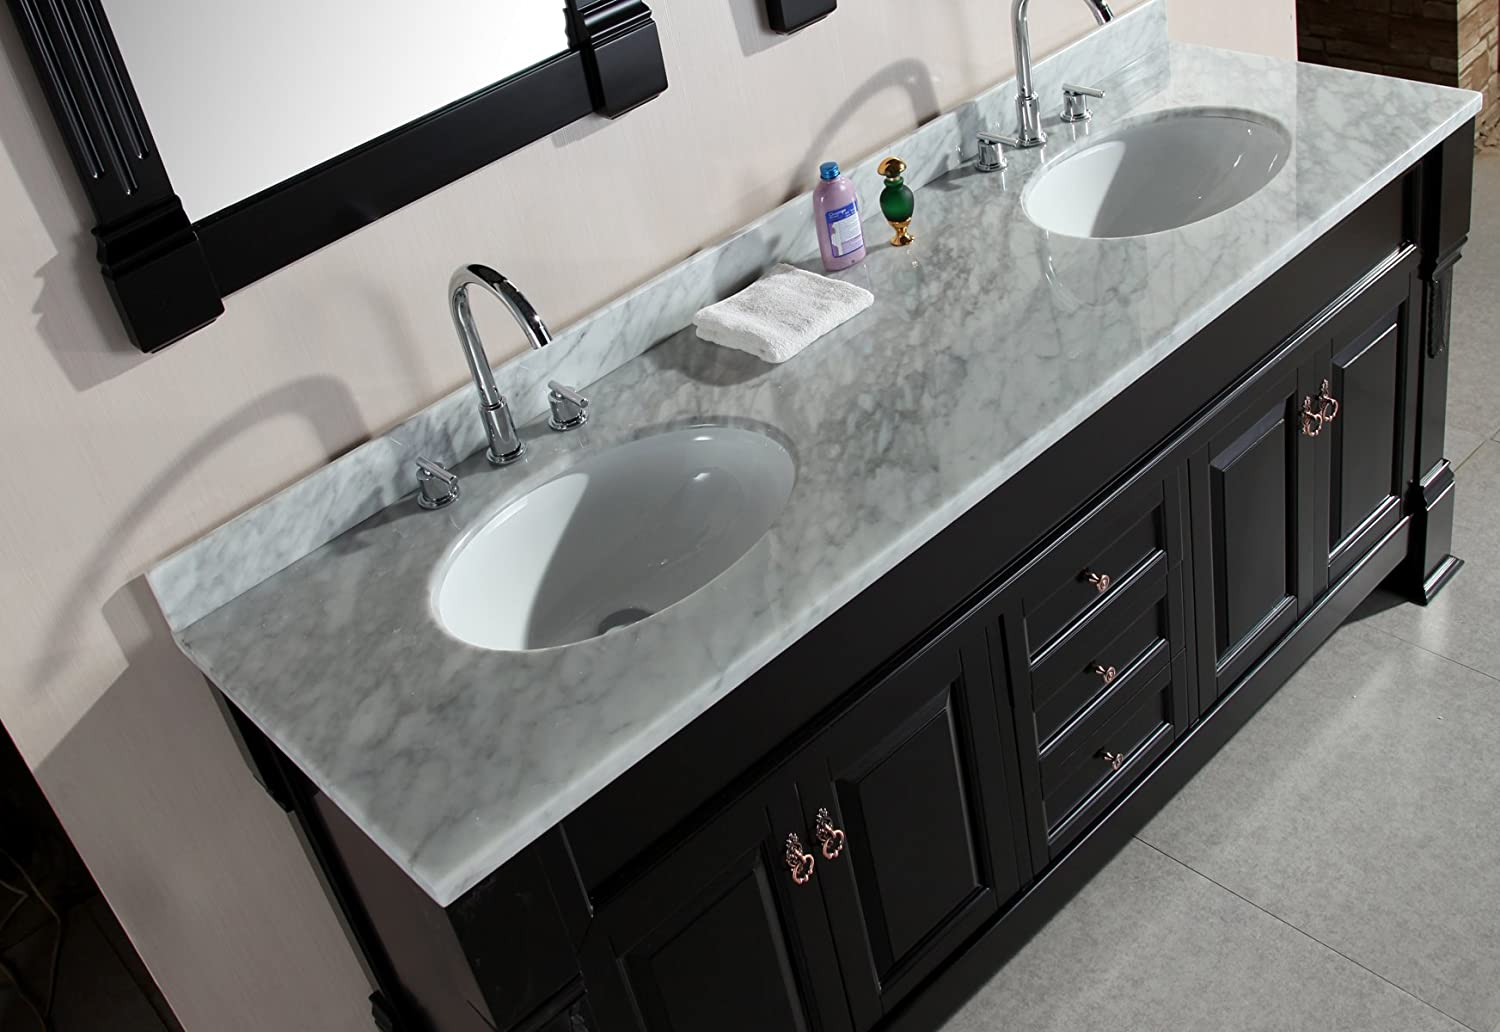 Vanity Top Double Sink. Design Element Marcos Double Sink Vanity Set wih Cr me Marfil Marble  Countertop 72 Inch Mirrors Amazon com